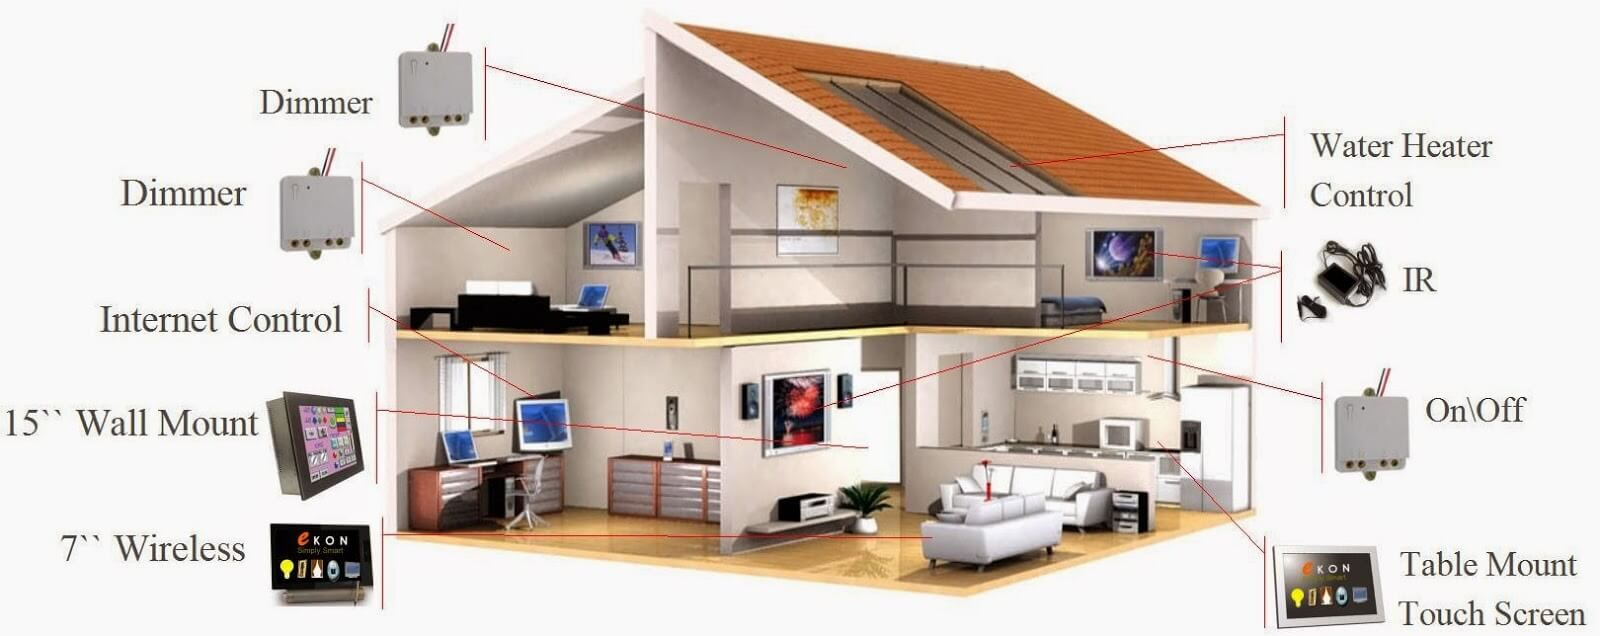 Intellicaz Offering Home Automation System For Villa S Luxury Houses Apartment S Individual Houses Etc Home Automation System Home Smart Home Automation